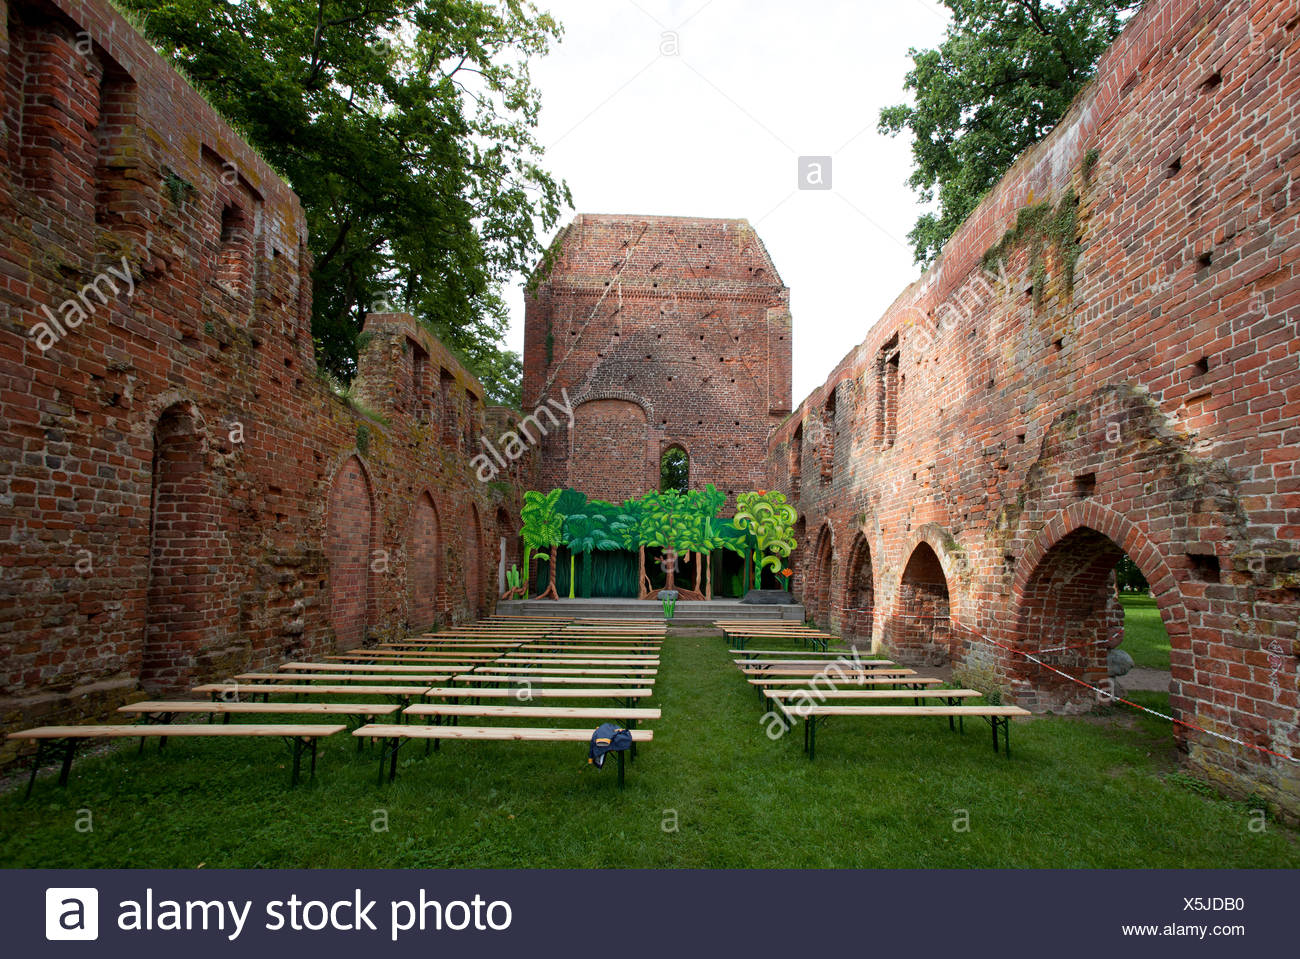 Ruins of Eldena, one of the venues of the Ostseefestspiele festival, Mecklenburg-Western Pomerania - Stock Image